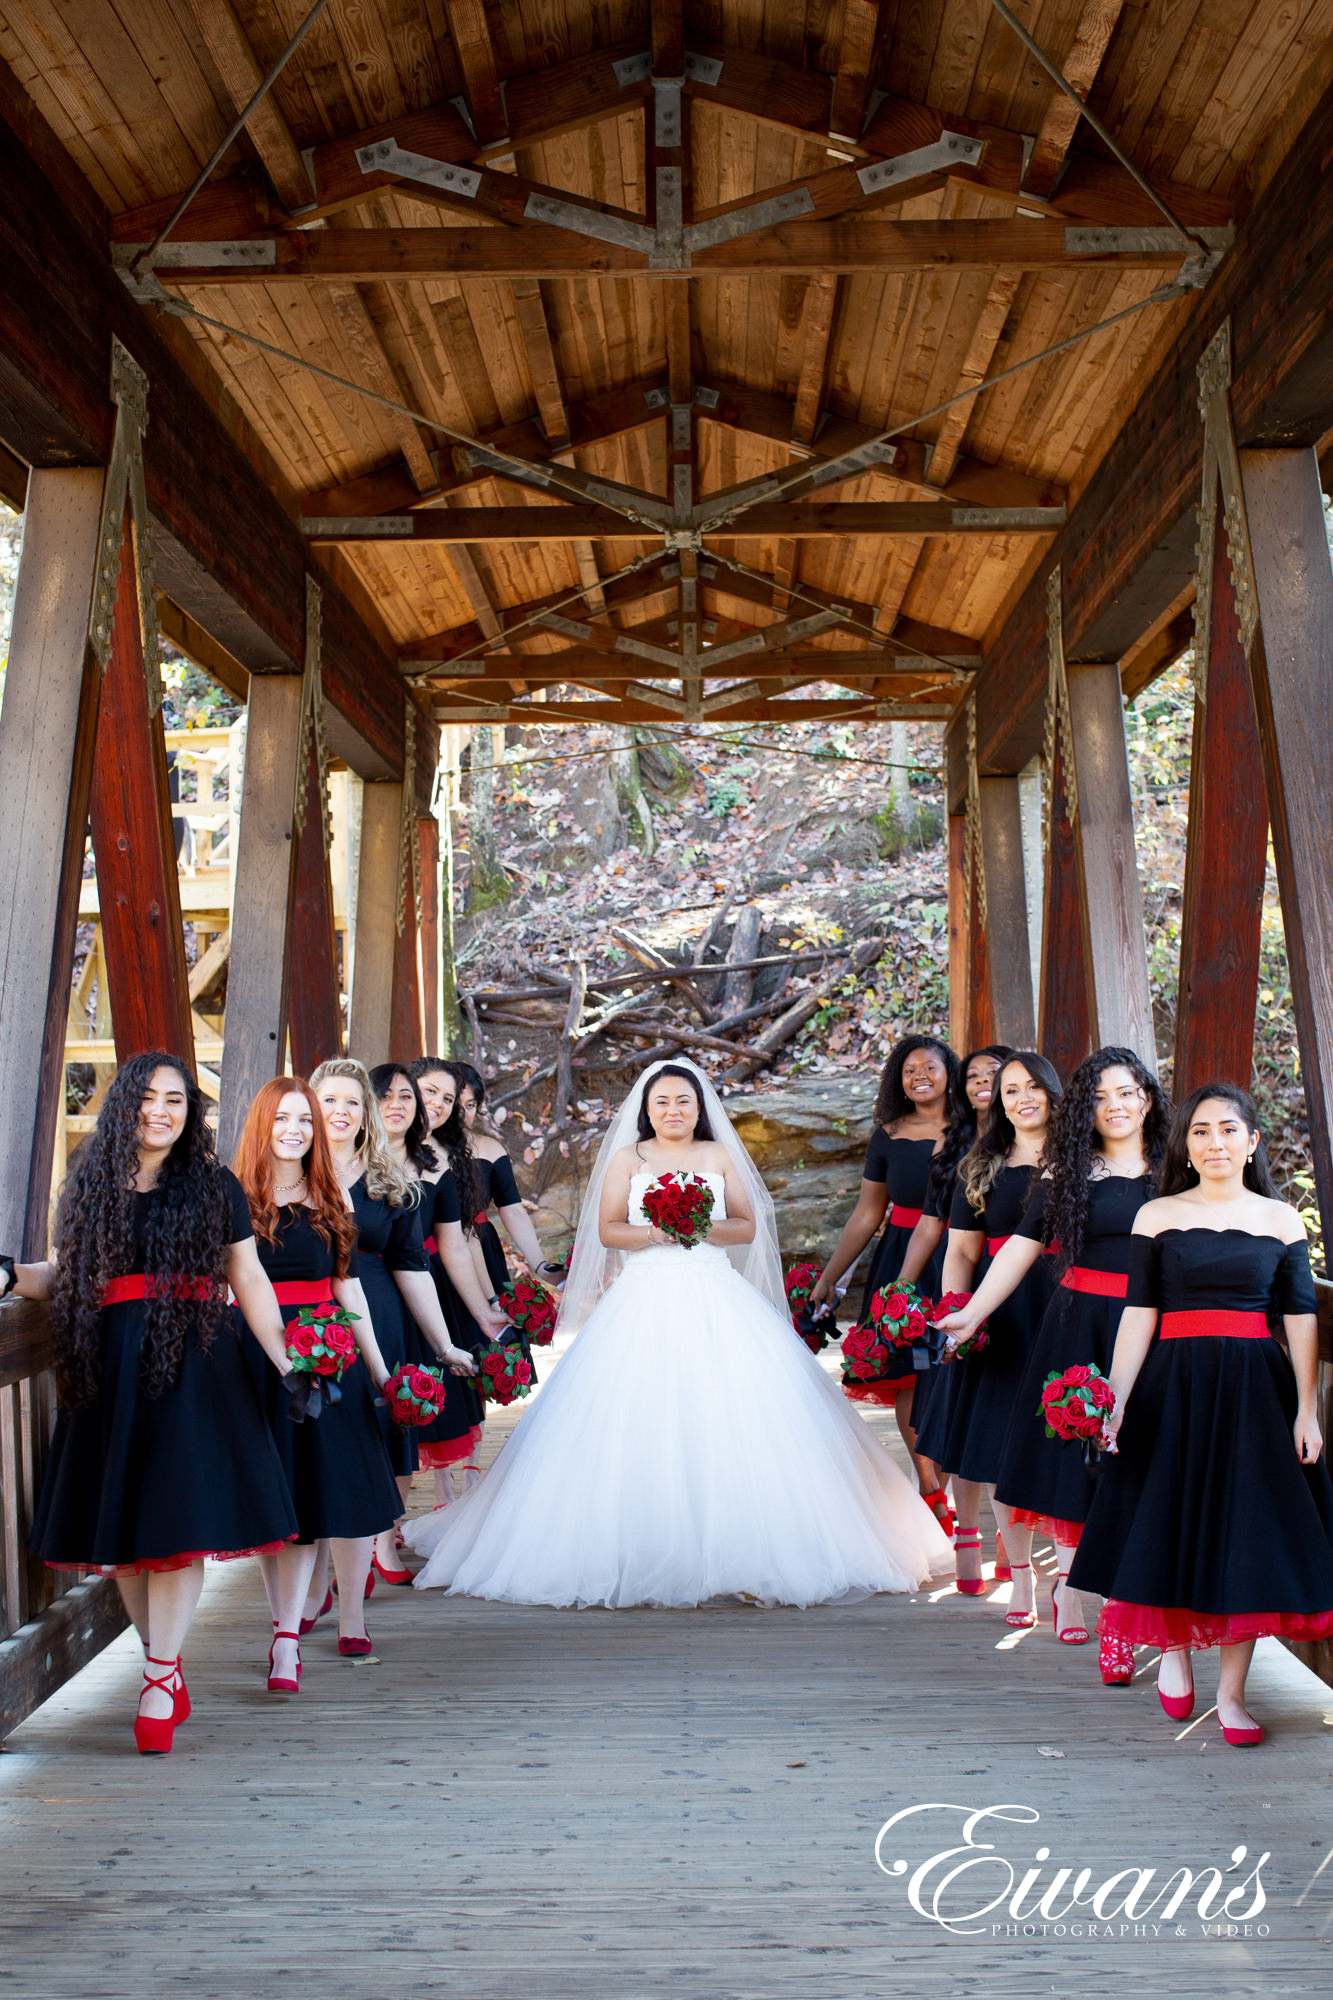 group of people in wedding dress